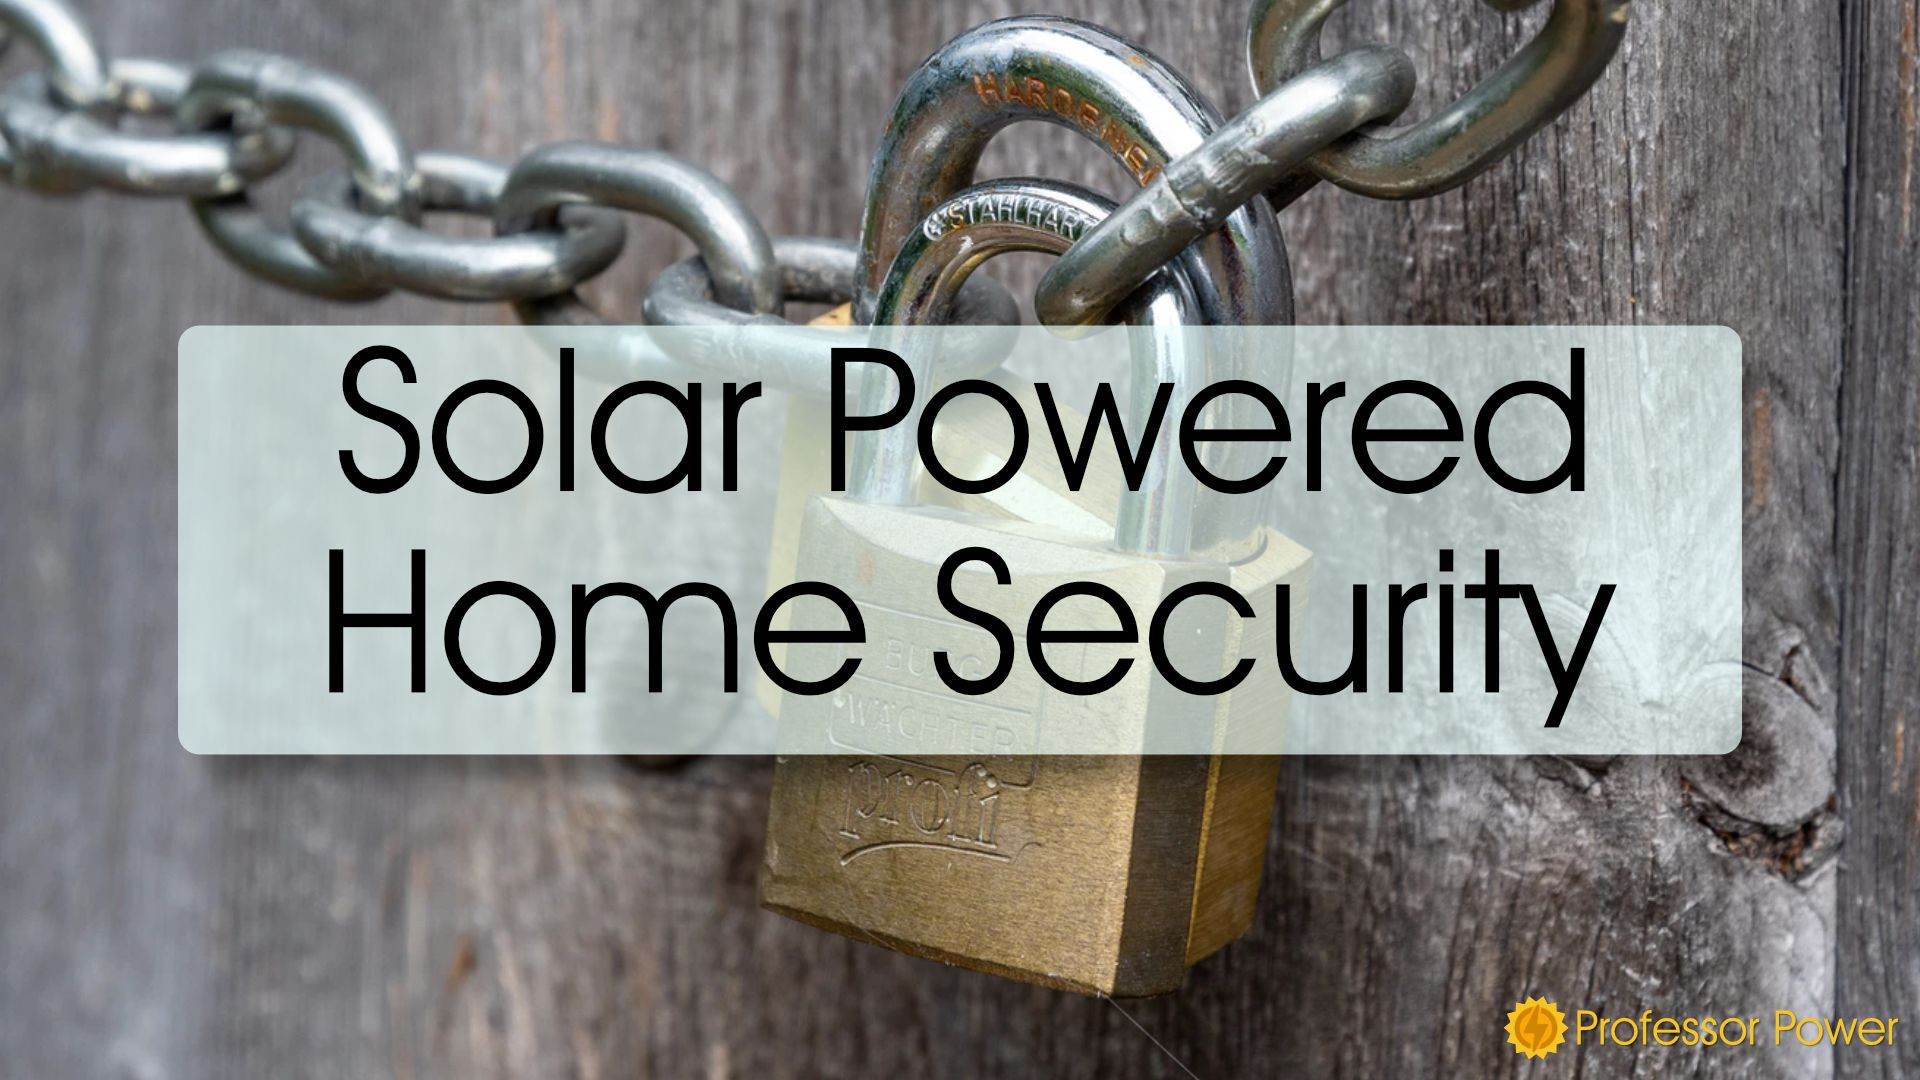 Solar Powered Home Security